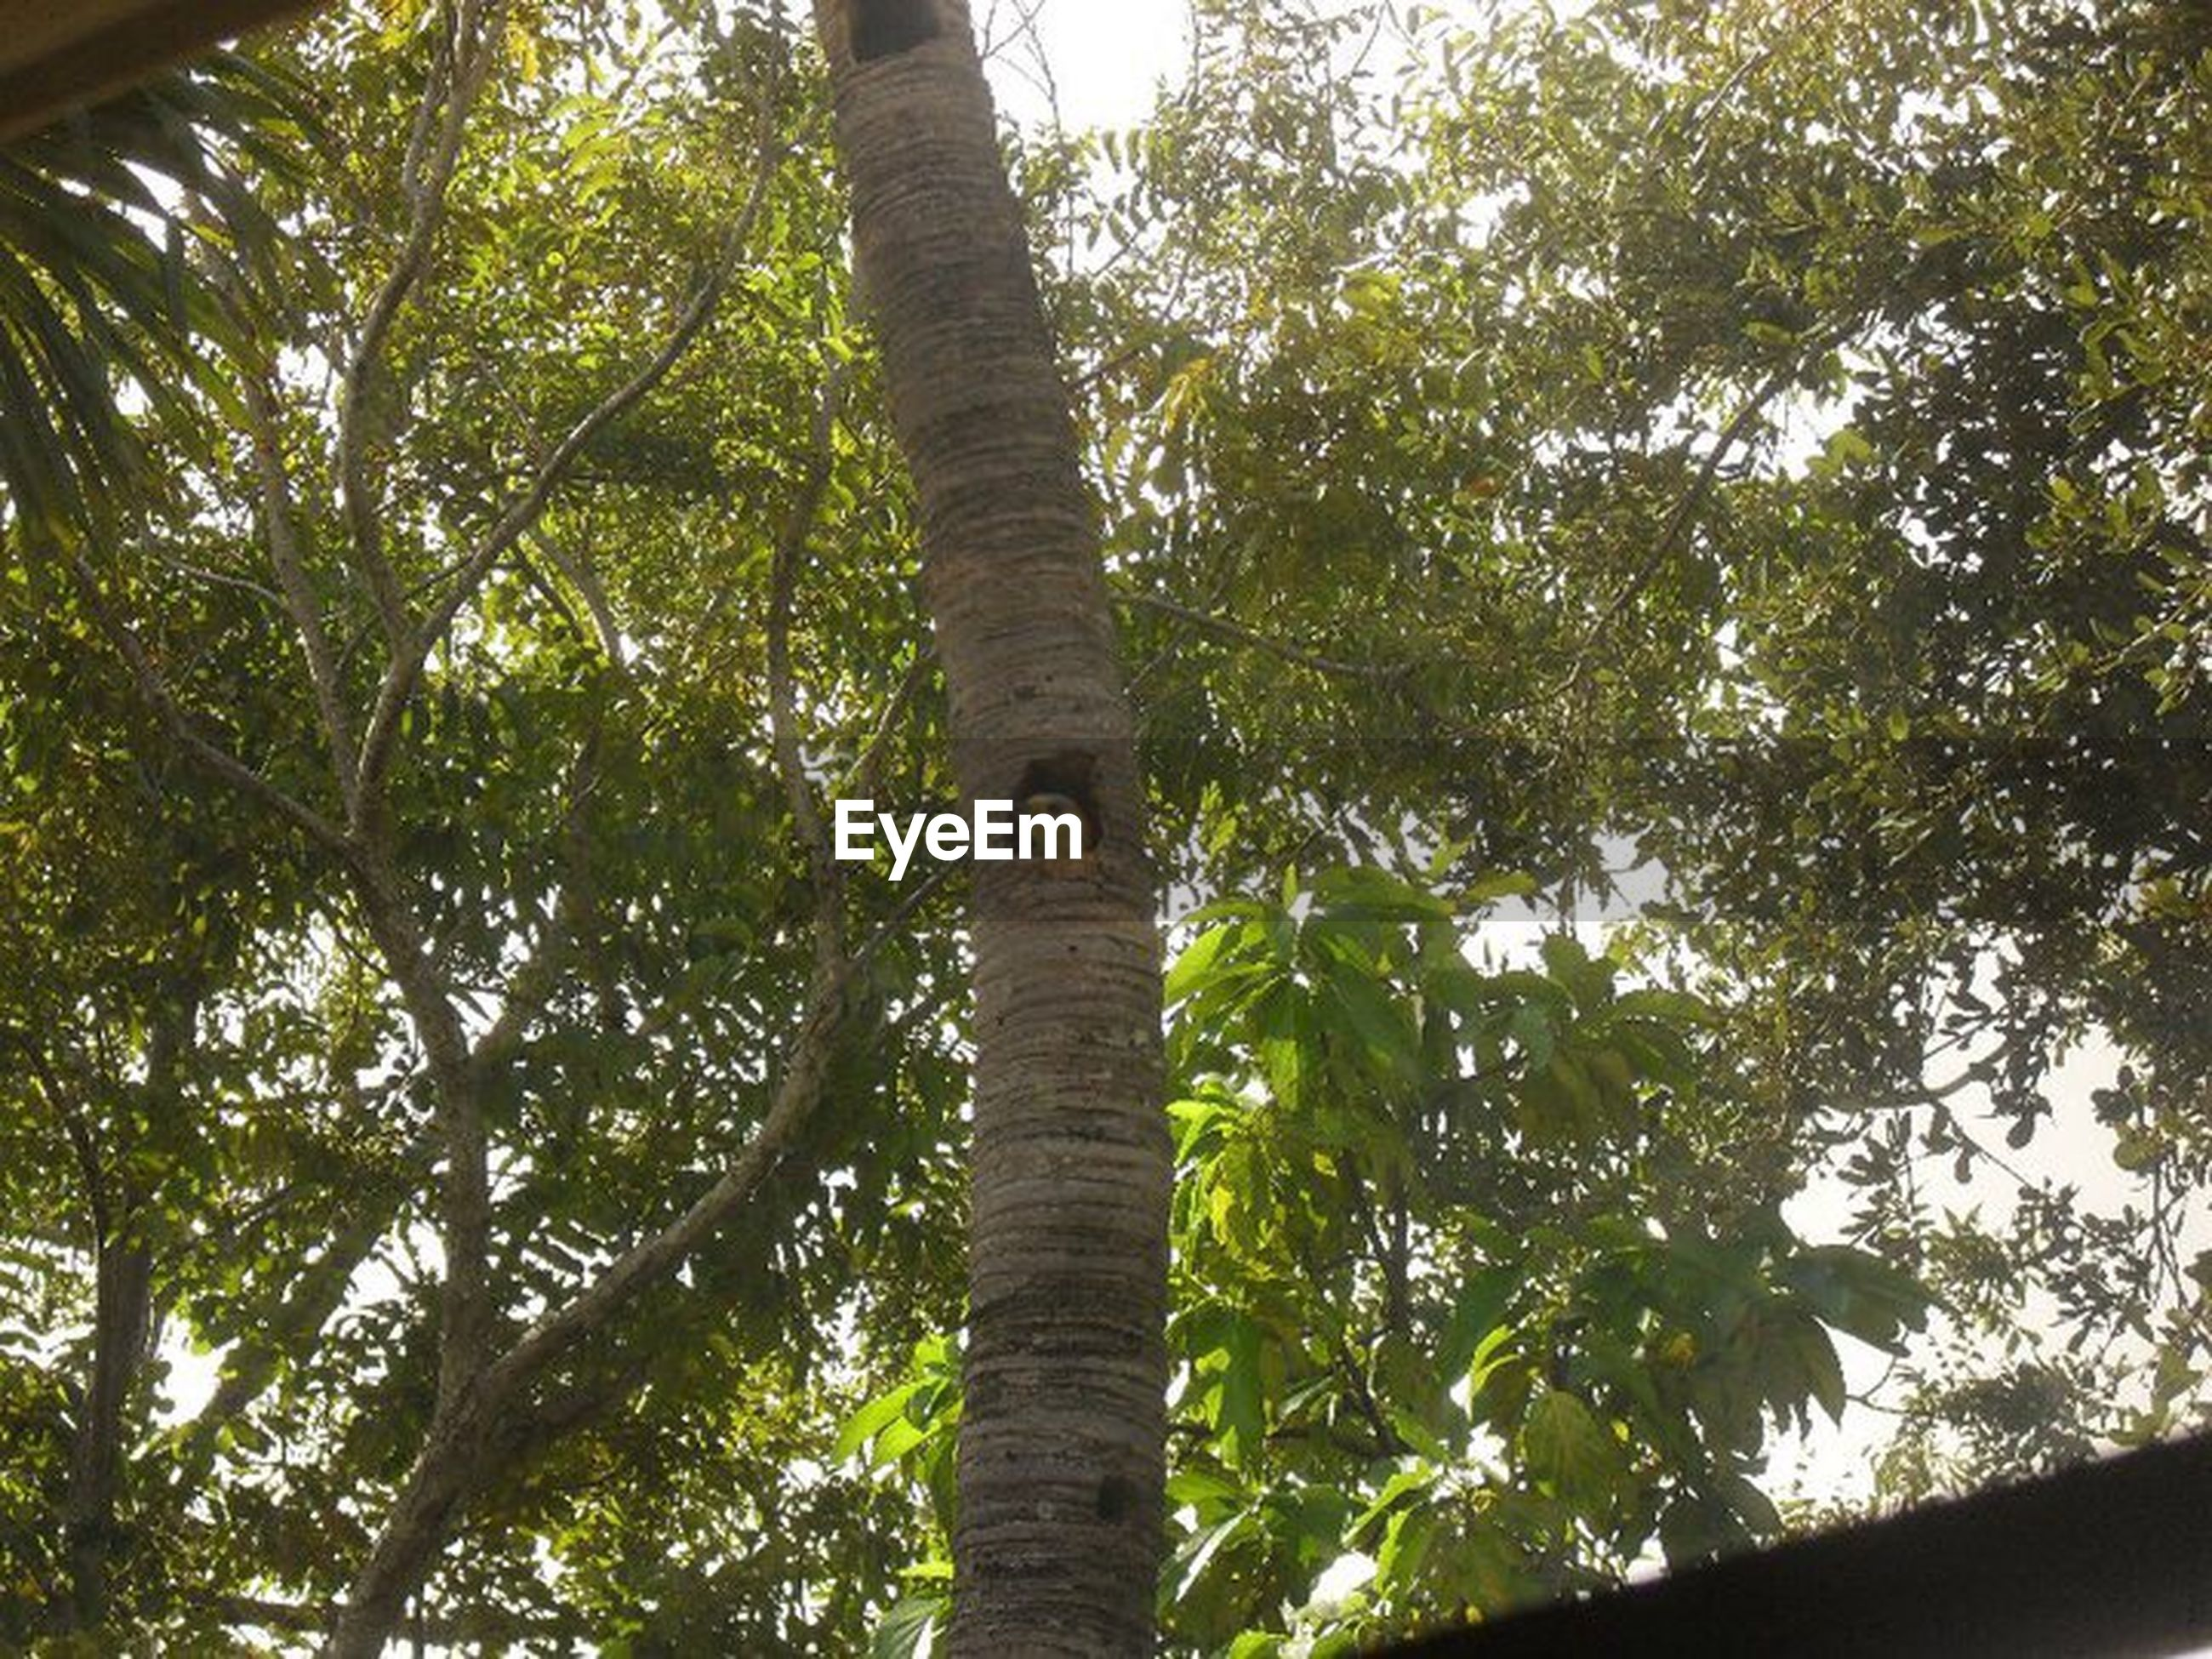 tree, low angle view, growth, tree trunk, branch, nature, green, green color, tranquility, day, sky, beauty in nature, tranquil scene, scenics, lush foliage, outdoors, tall - high, freshness, woodland, tall, non-urban scene, tree canopy, no people, full frame, woods, treetop